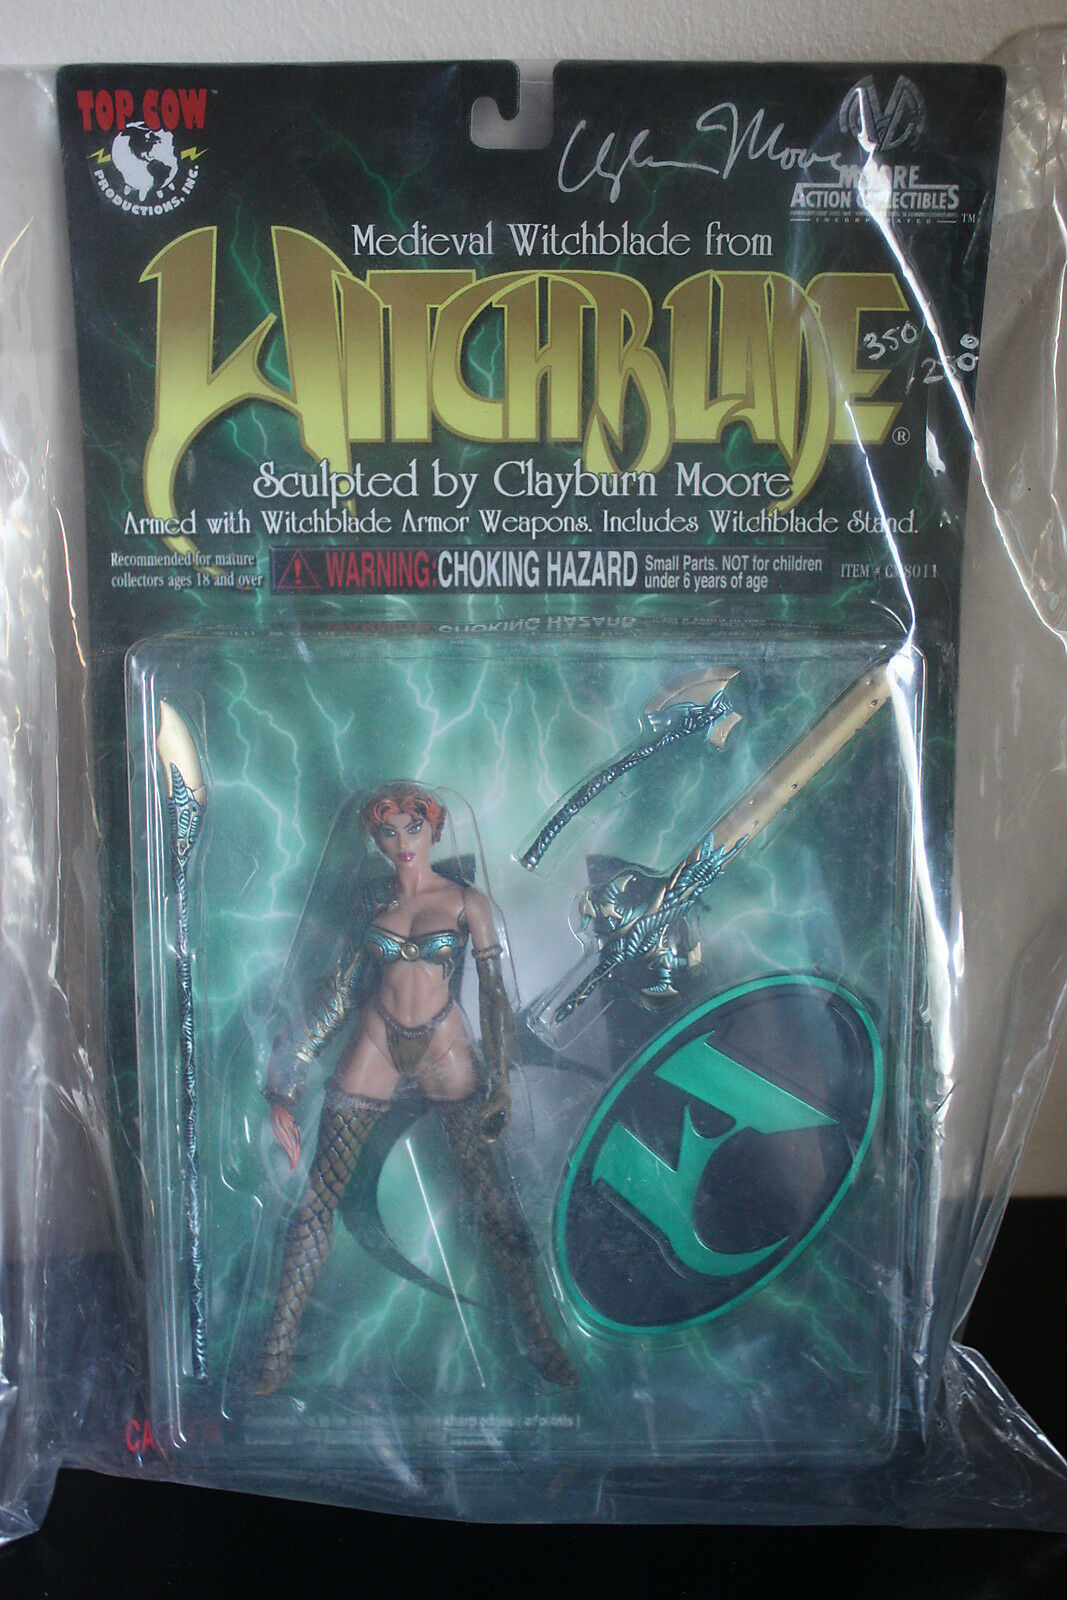 Medieval Medieval Medieval Witchblade From Witchblade Moore Action Collectibles Autographed ae70a1